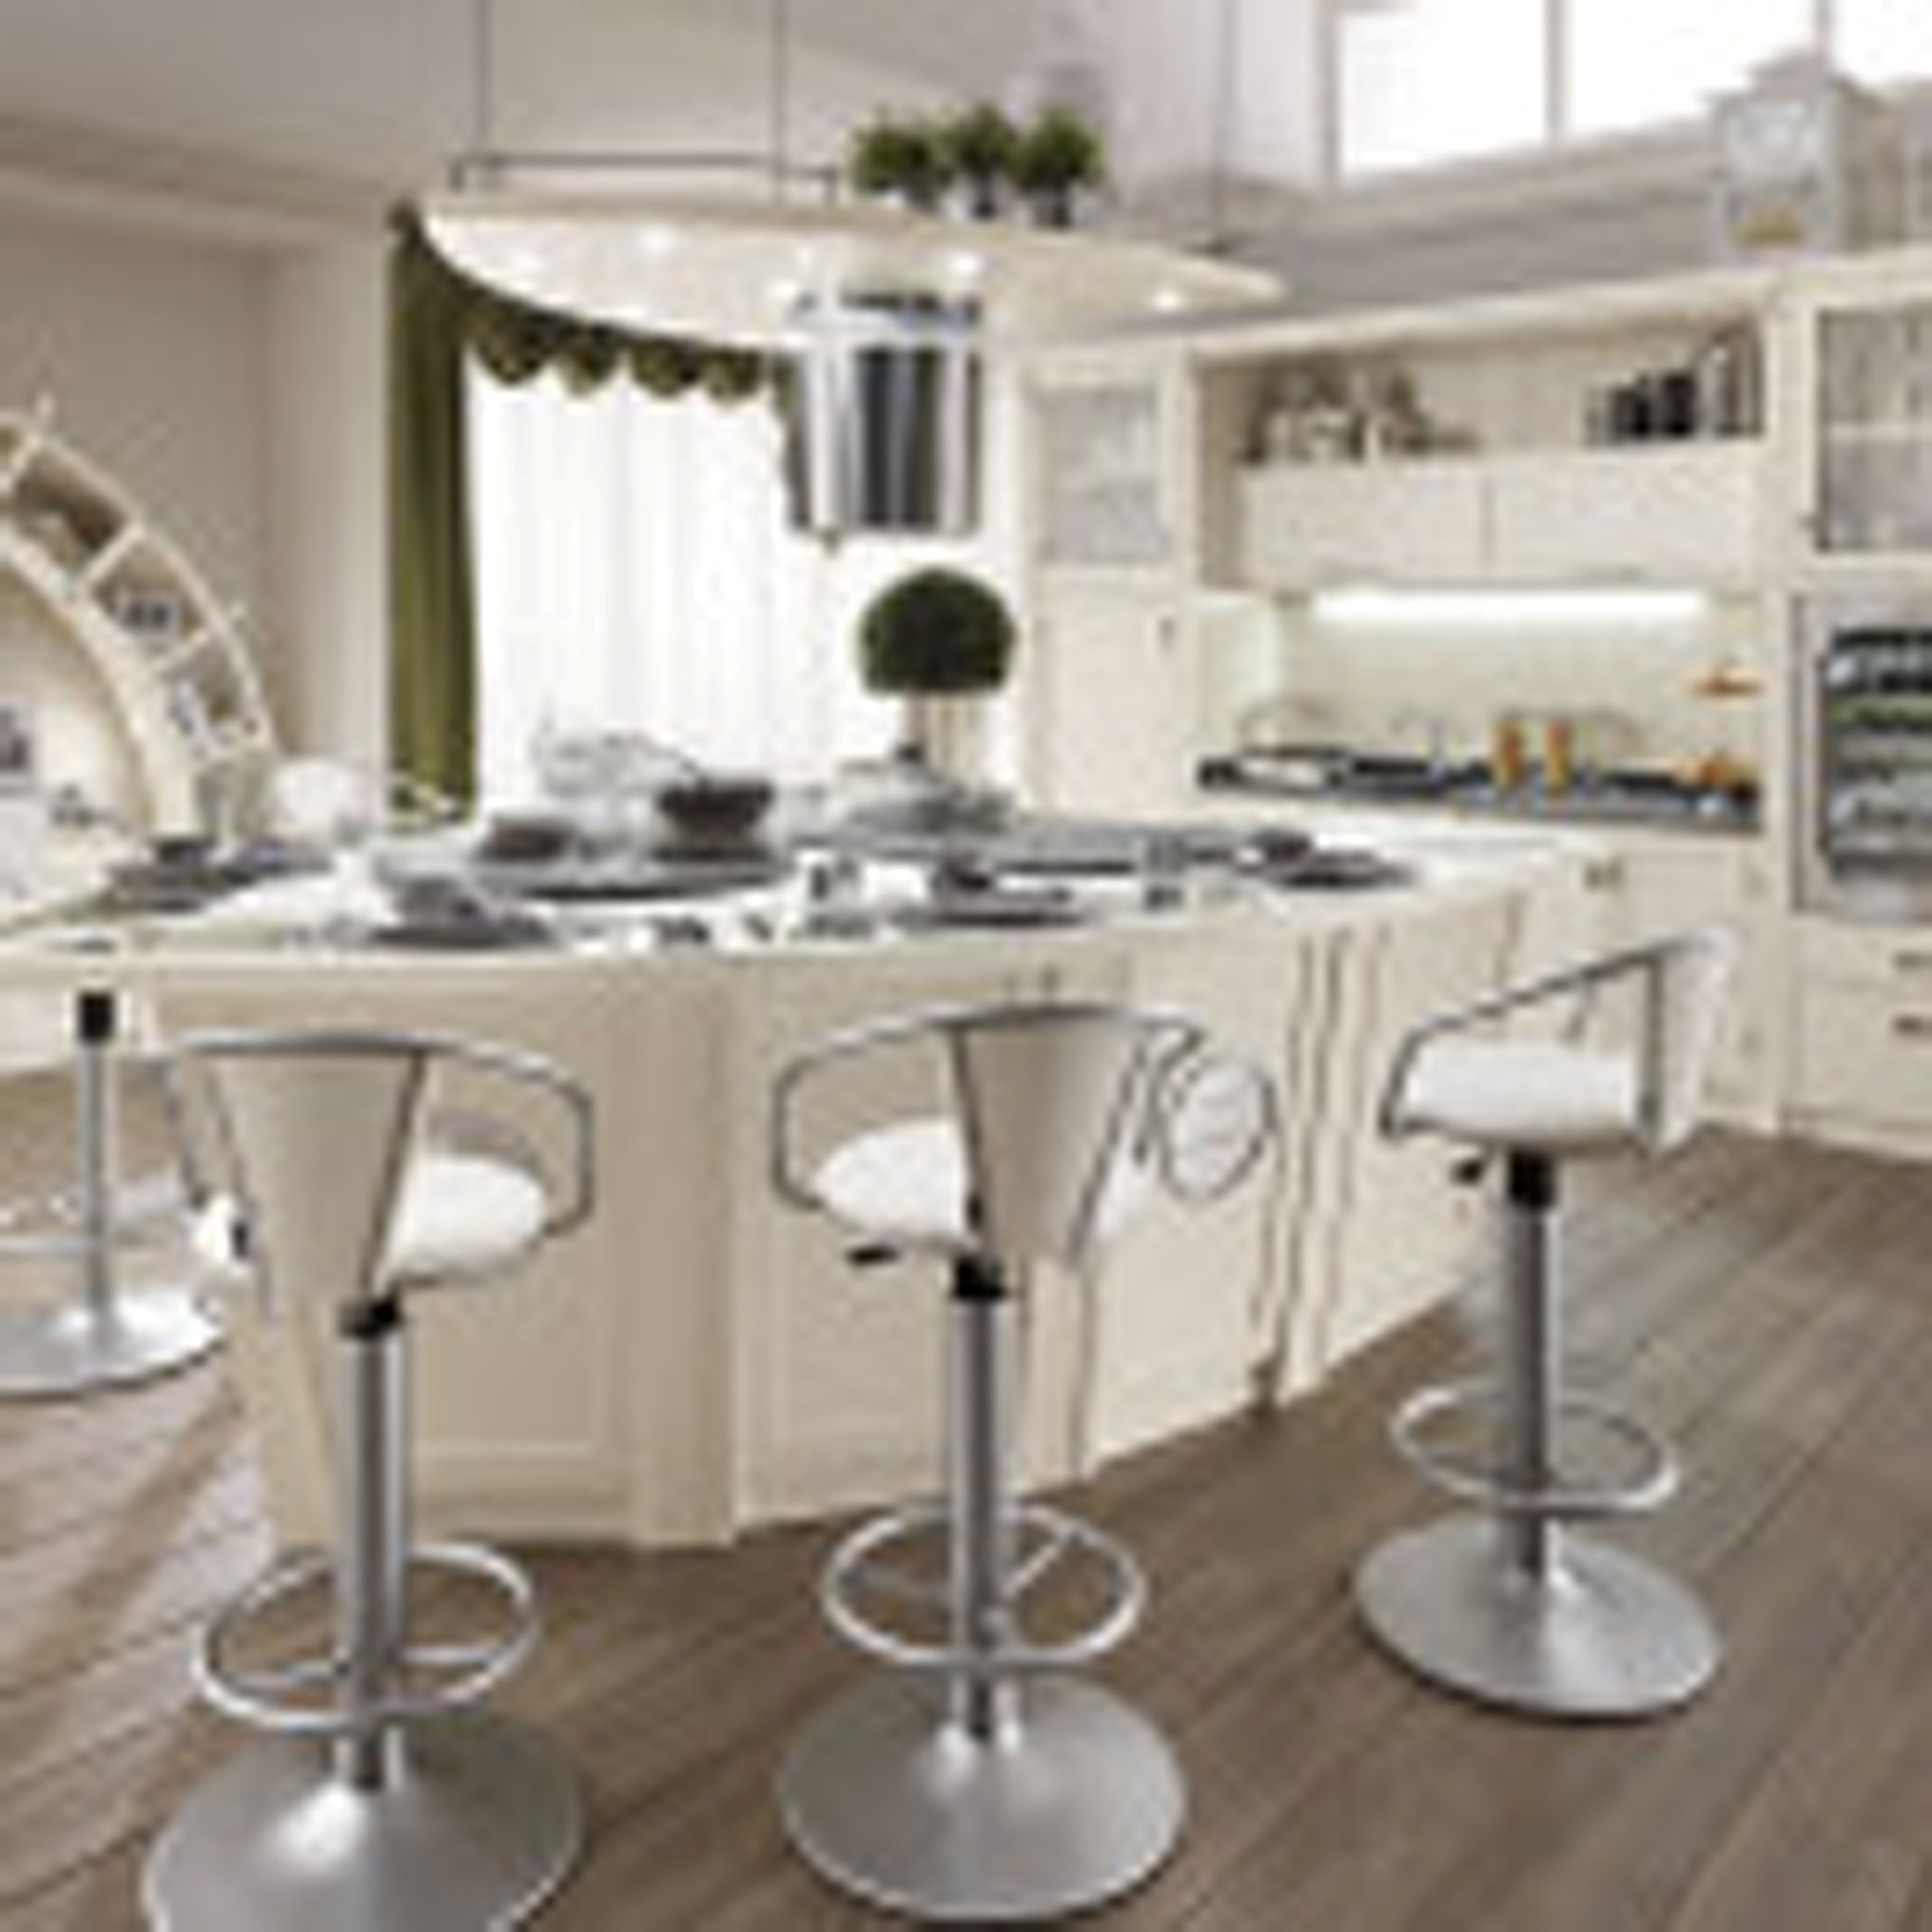 White Painted Kitchen With Stainless Steel Single Bar Stools And Cabinet With Hanging Rack Contemporary French Country Style Kitchen Design Ideas French Style Kitchen (View 13 of 39)